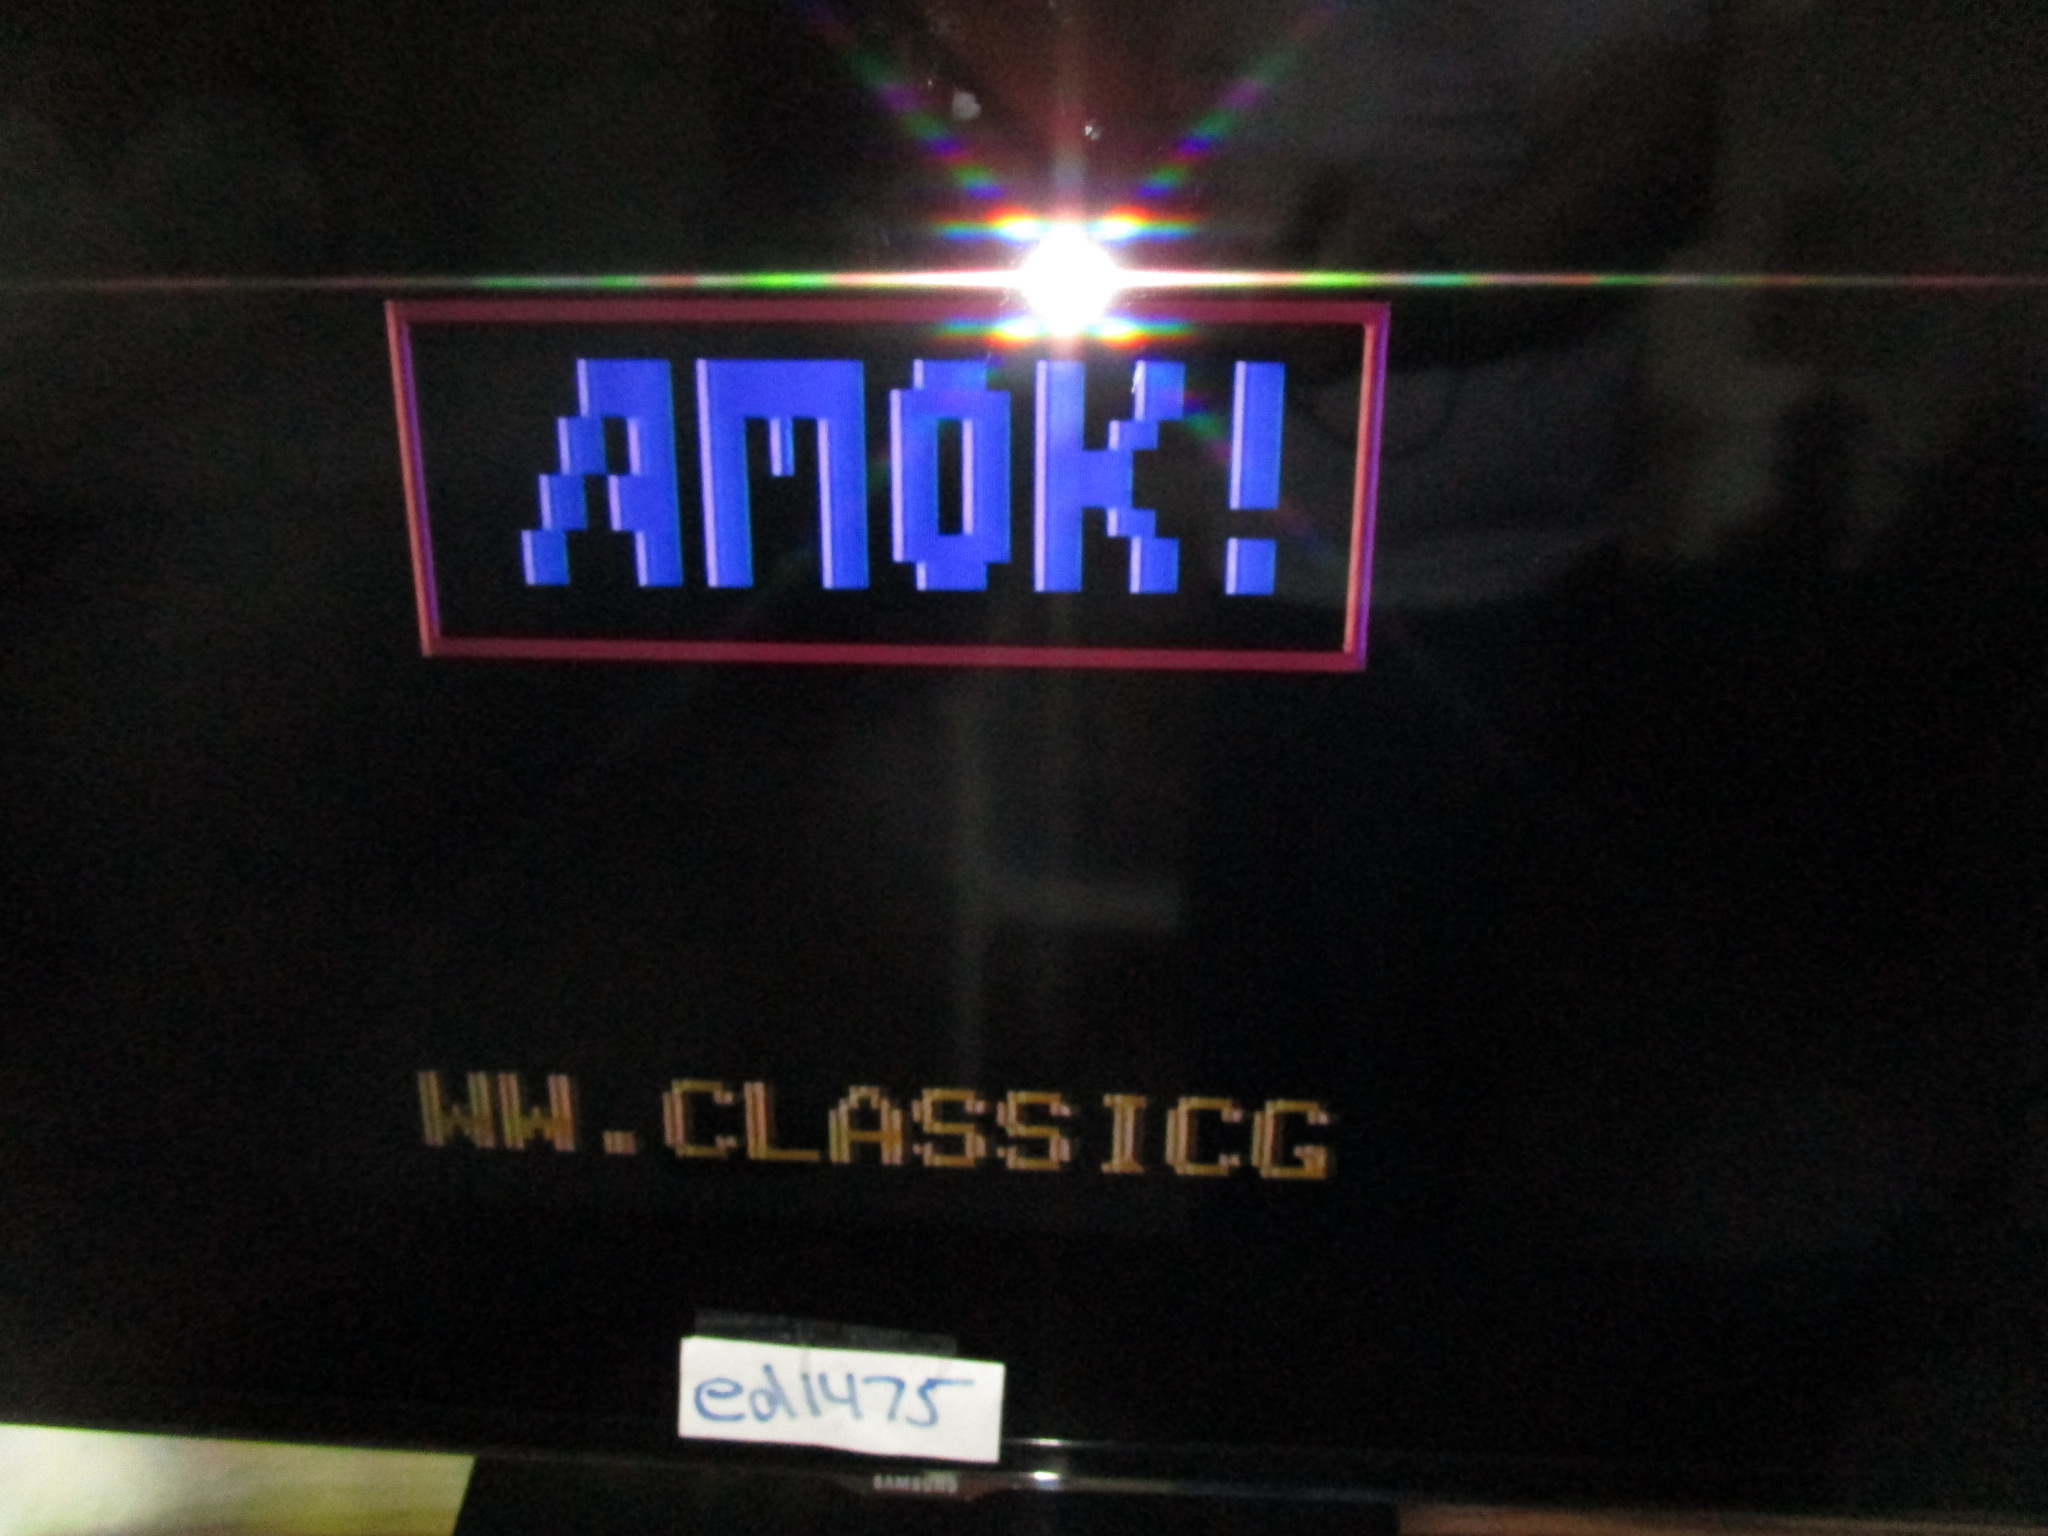 ed1475: Amok (Odyssey 2 / Videopac) 940 points on 2015-05-21 21:57:13